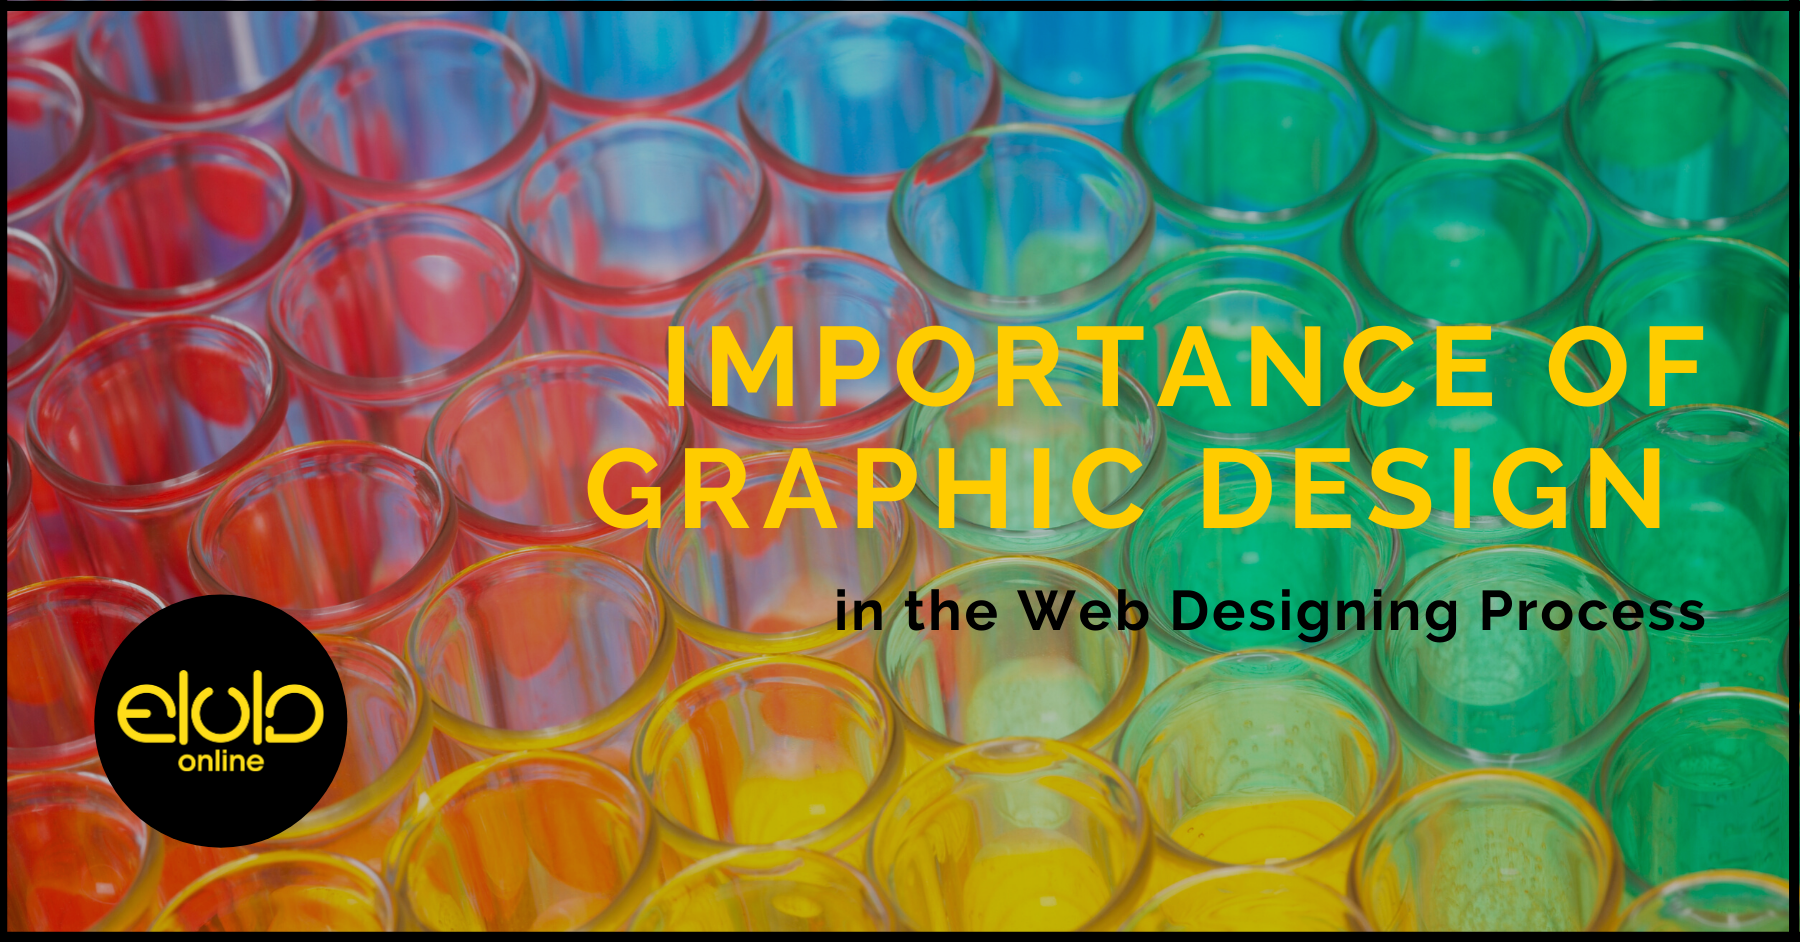 Graphic Design, Web Design, Website Design Sydney, Design Web Services